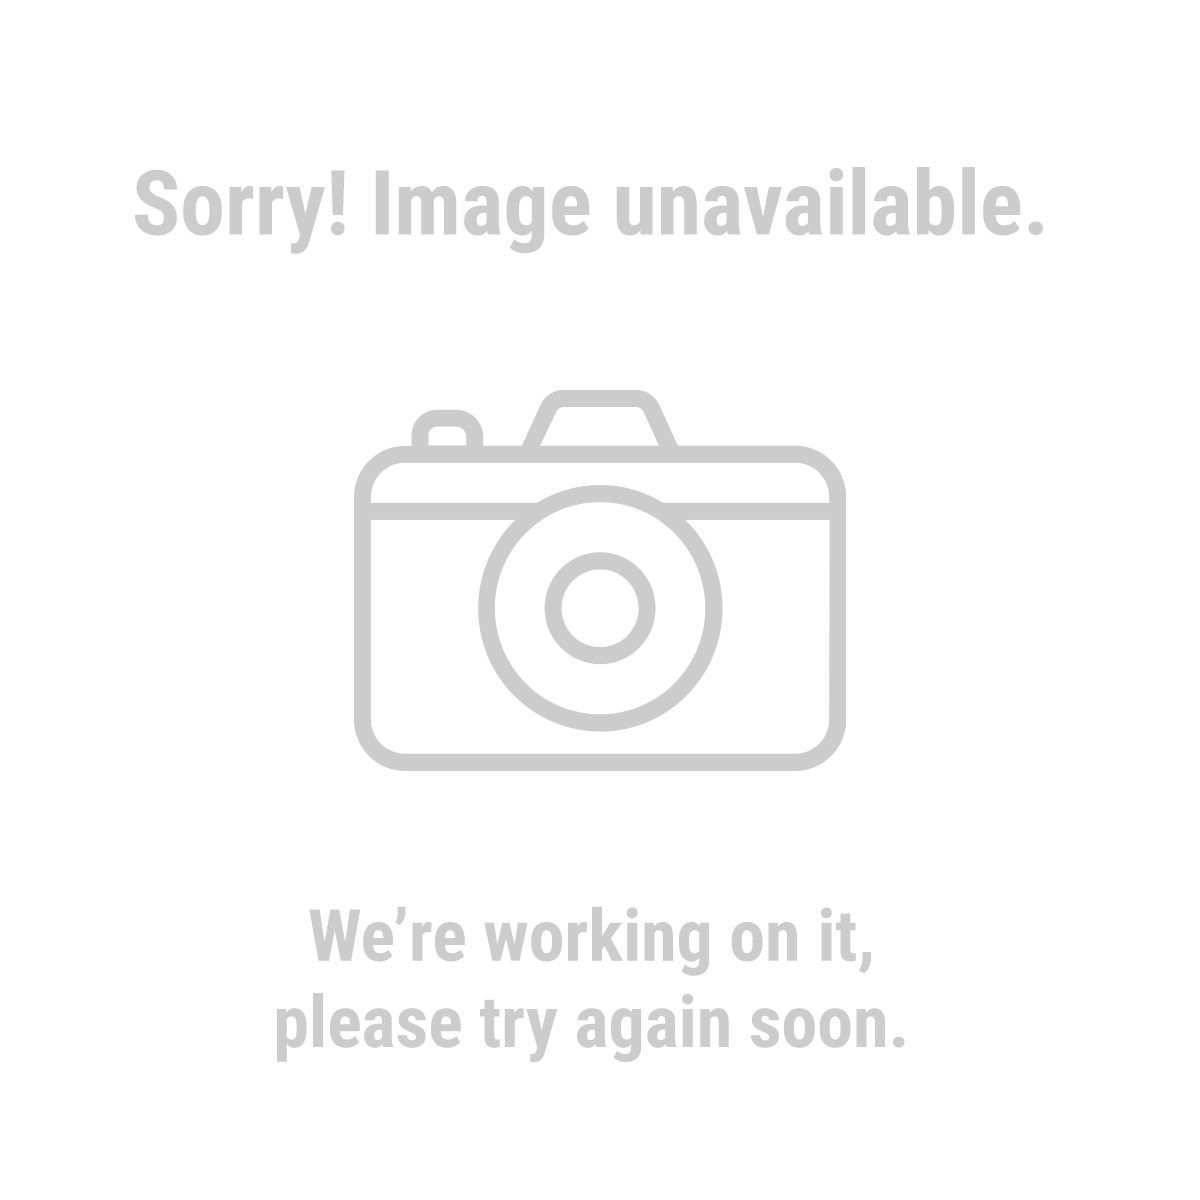 Western Safety 95585 Antivibration Gloves - X-Large